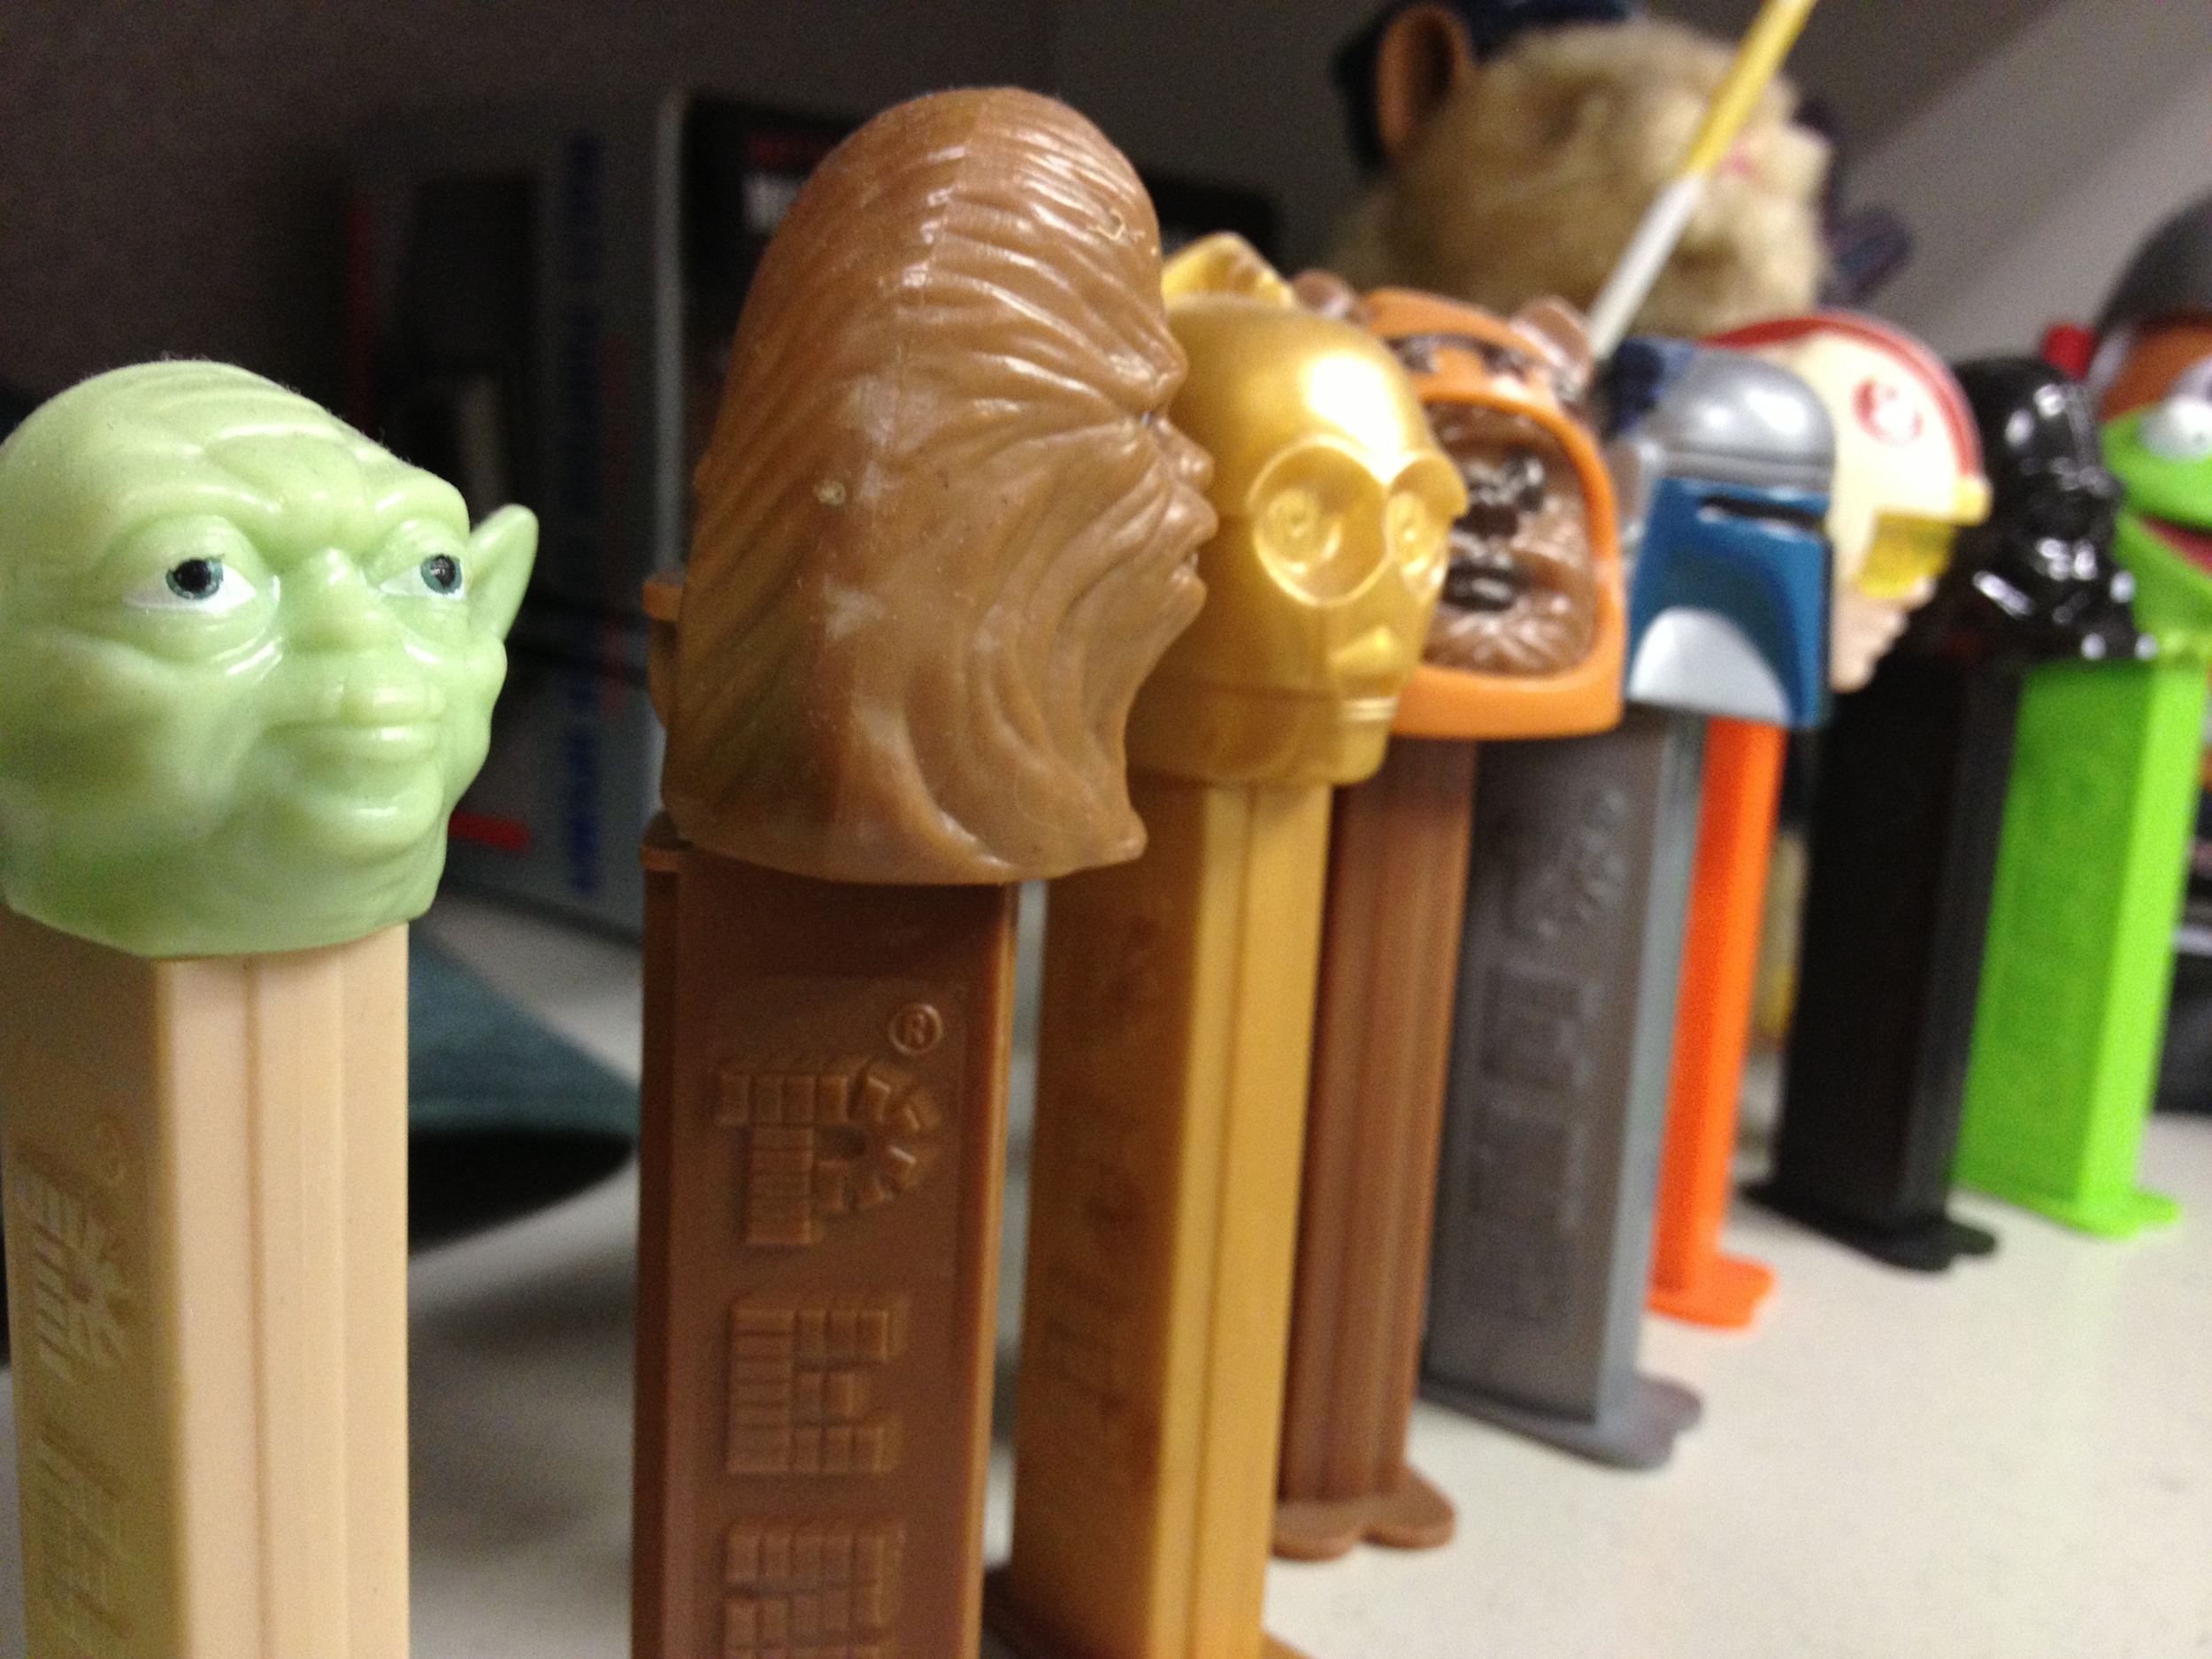 May the Pez be with you.